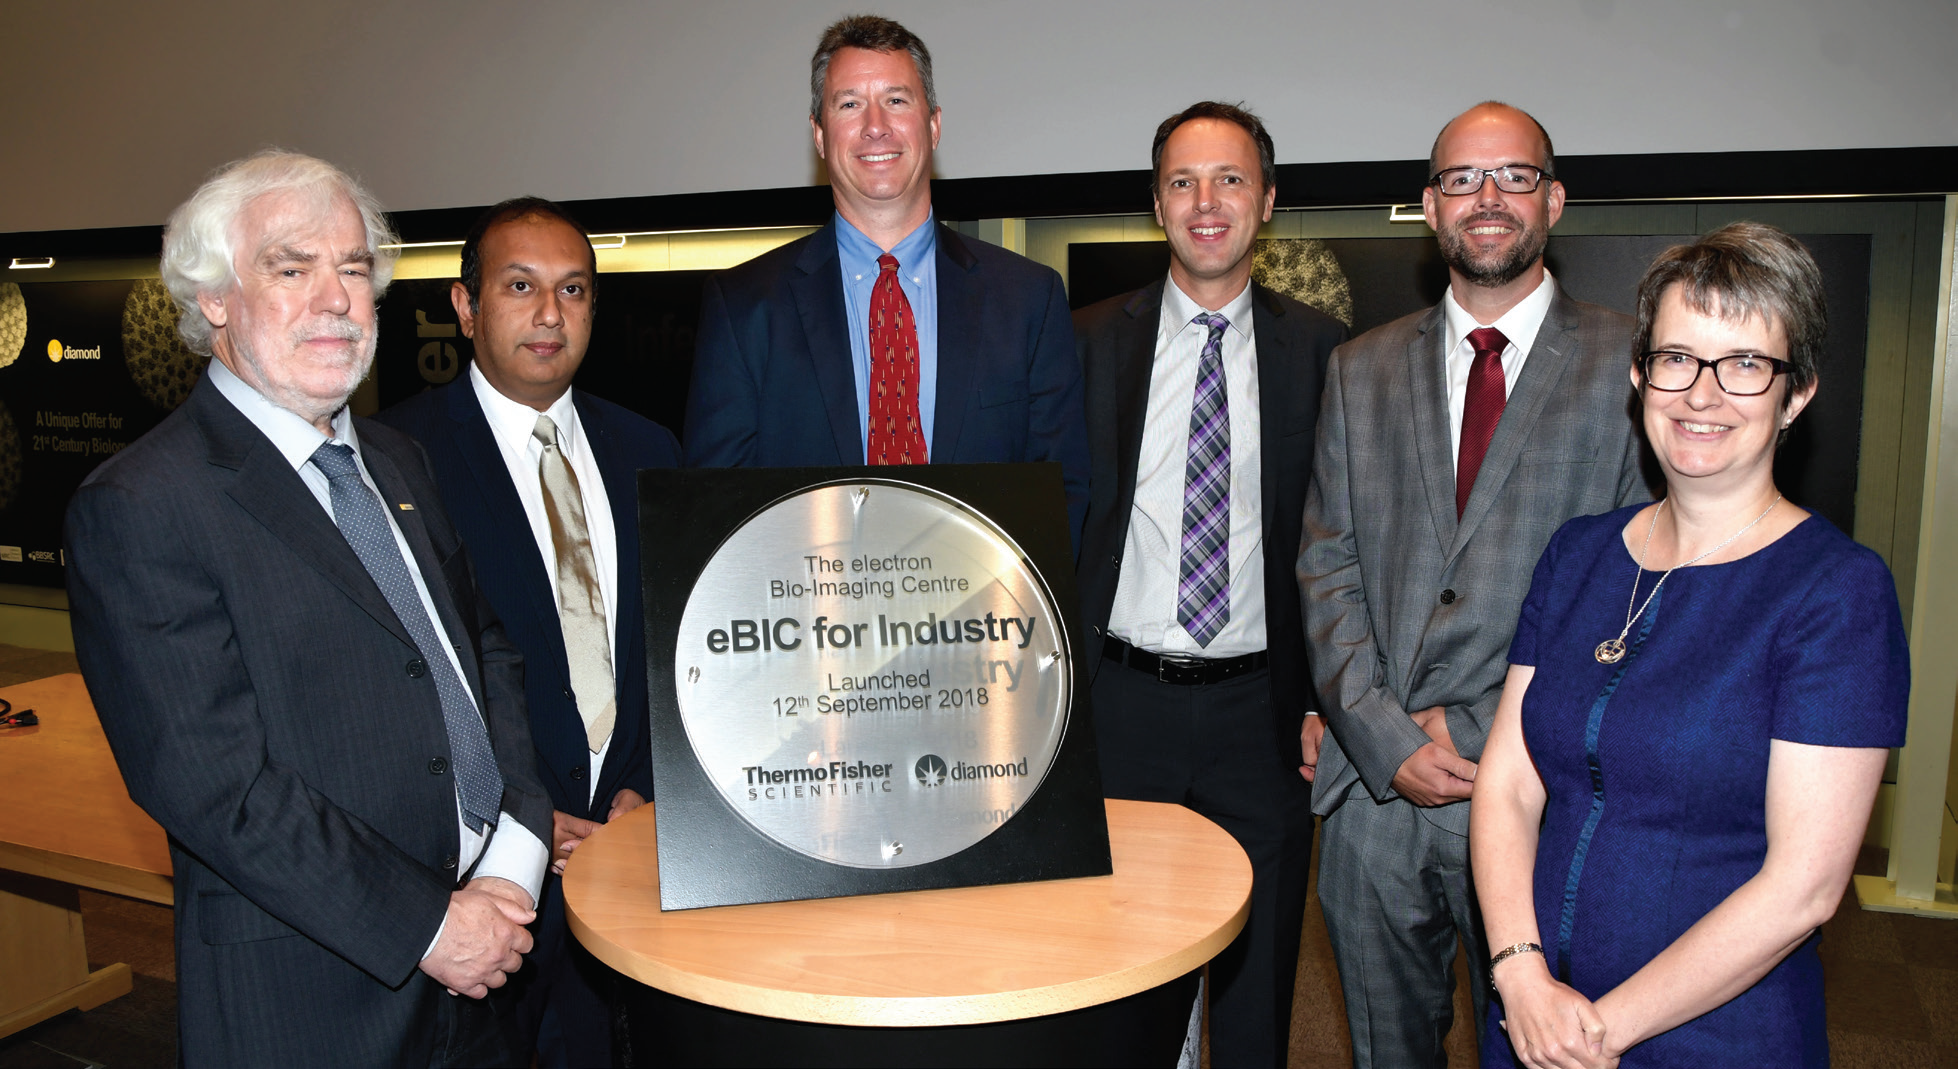 Celebrating the Thermo Fisher Scientific agreement during the official launch of eBIC. Left to right: Dave Stuart, Diamond Light Source, Rishi Matadeen, Dan Shine and Raymond Schrijver, Thermo